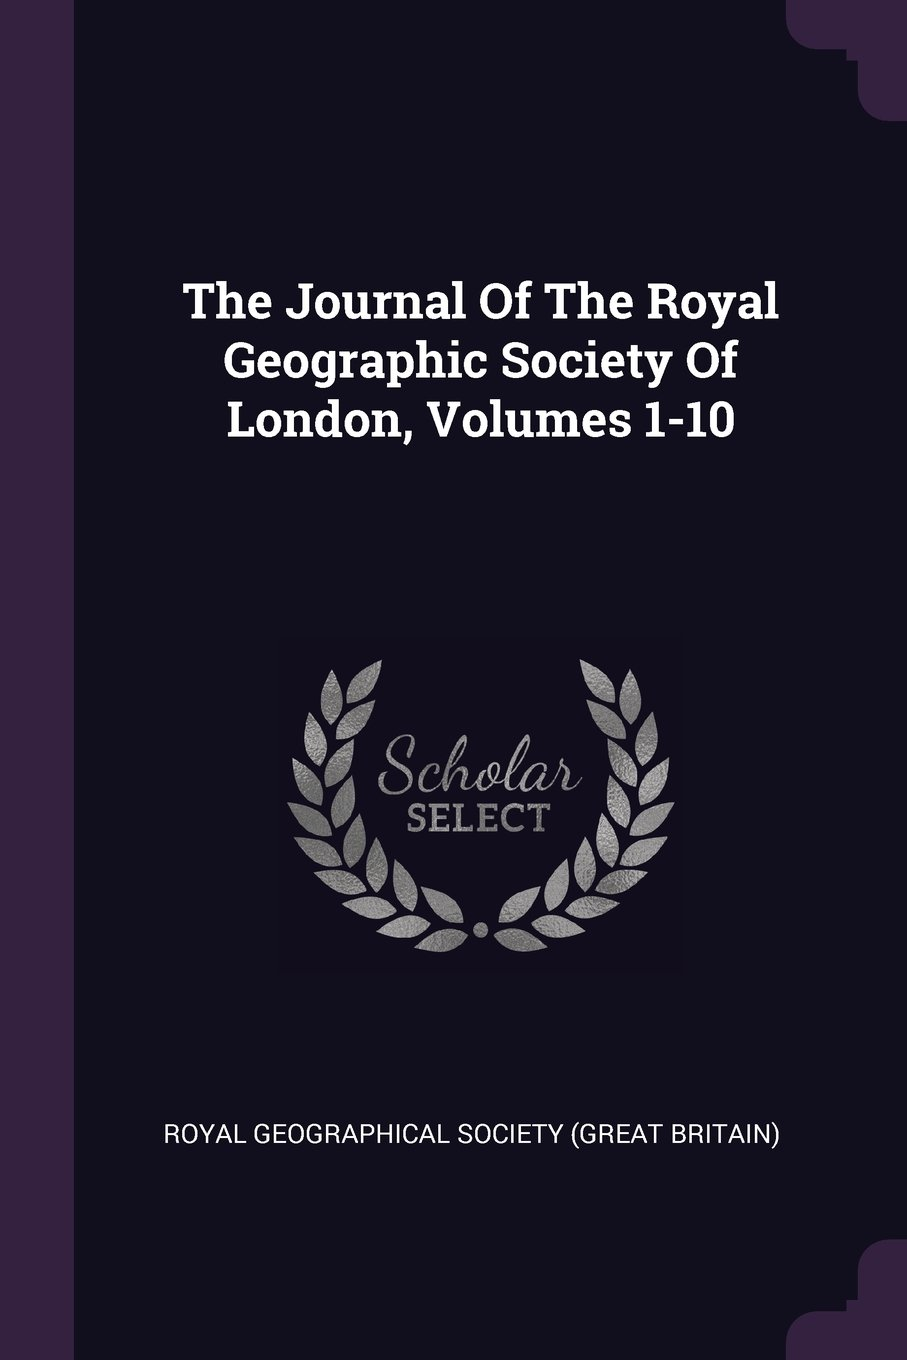 The Journal Of The Royal Geographic Society Of London, Volumes 1-10 pdf